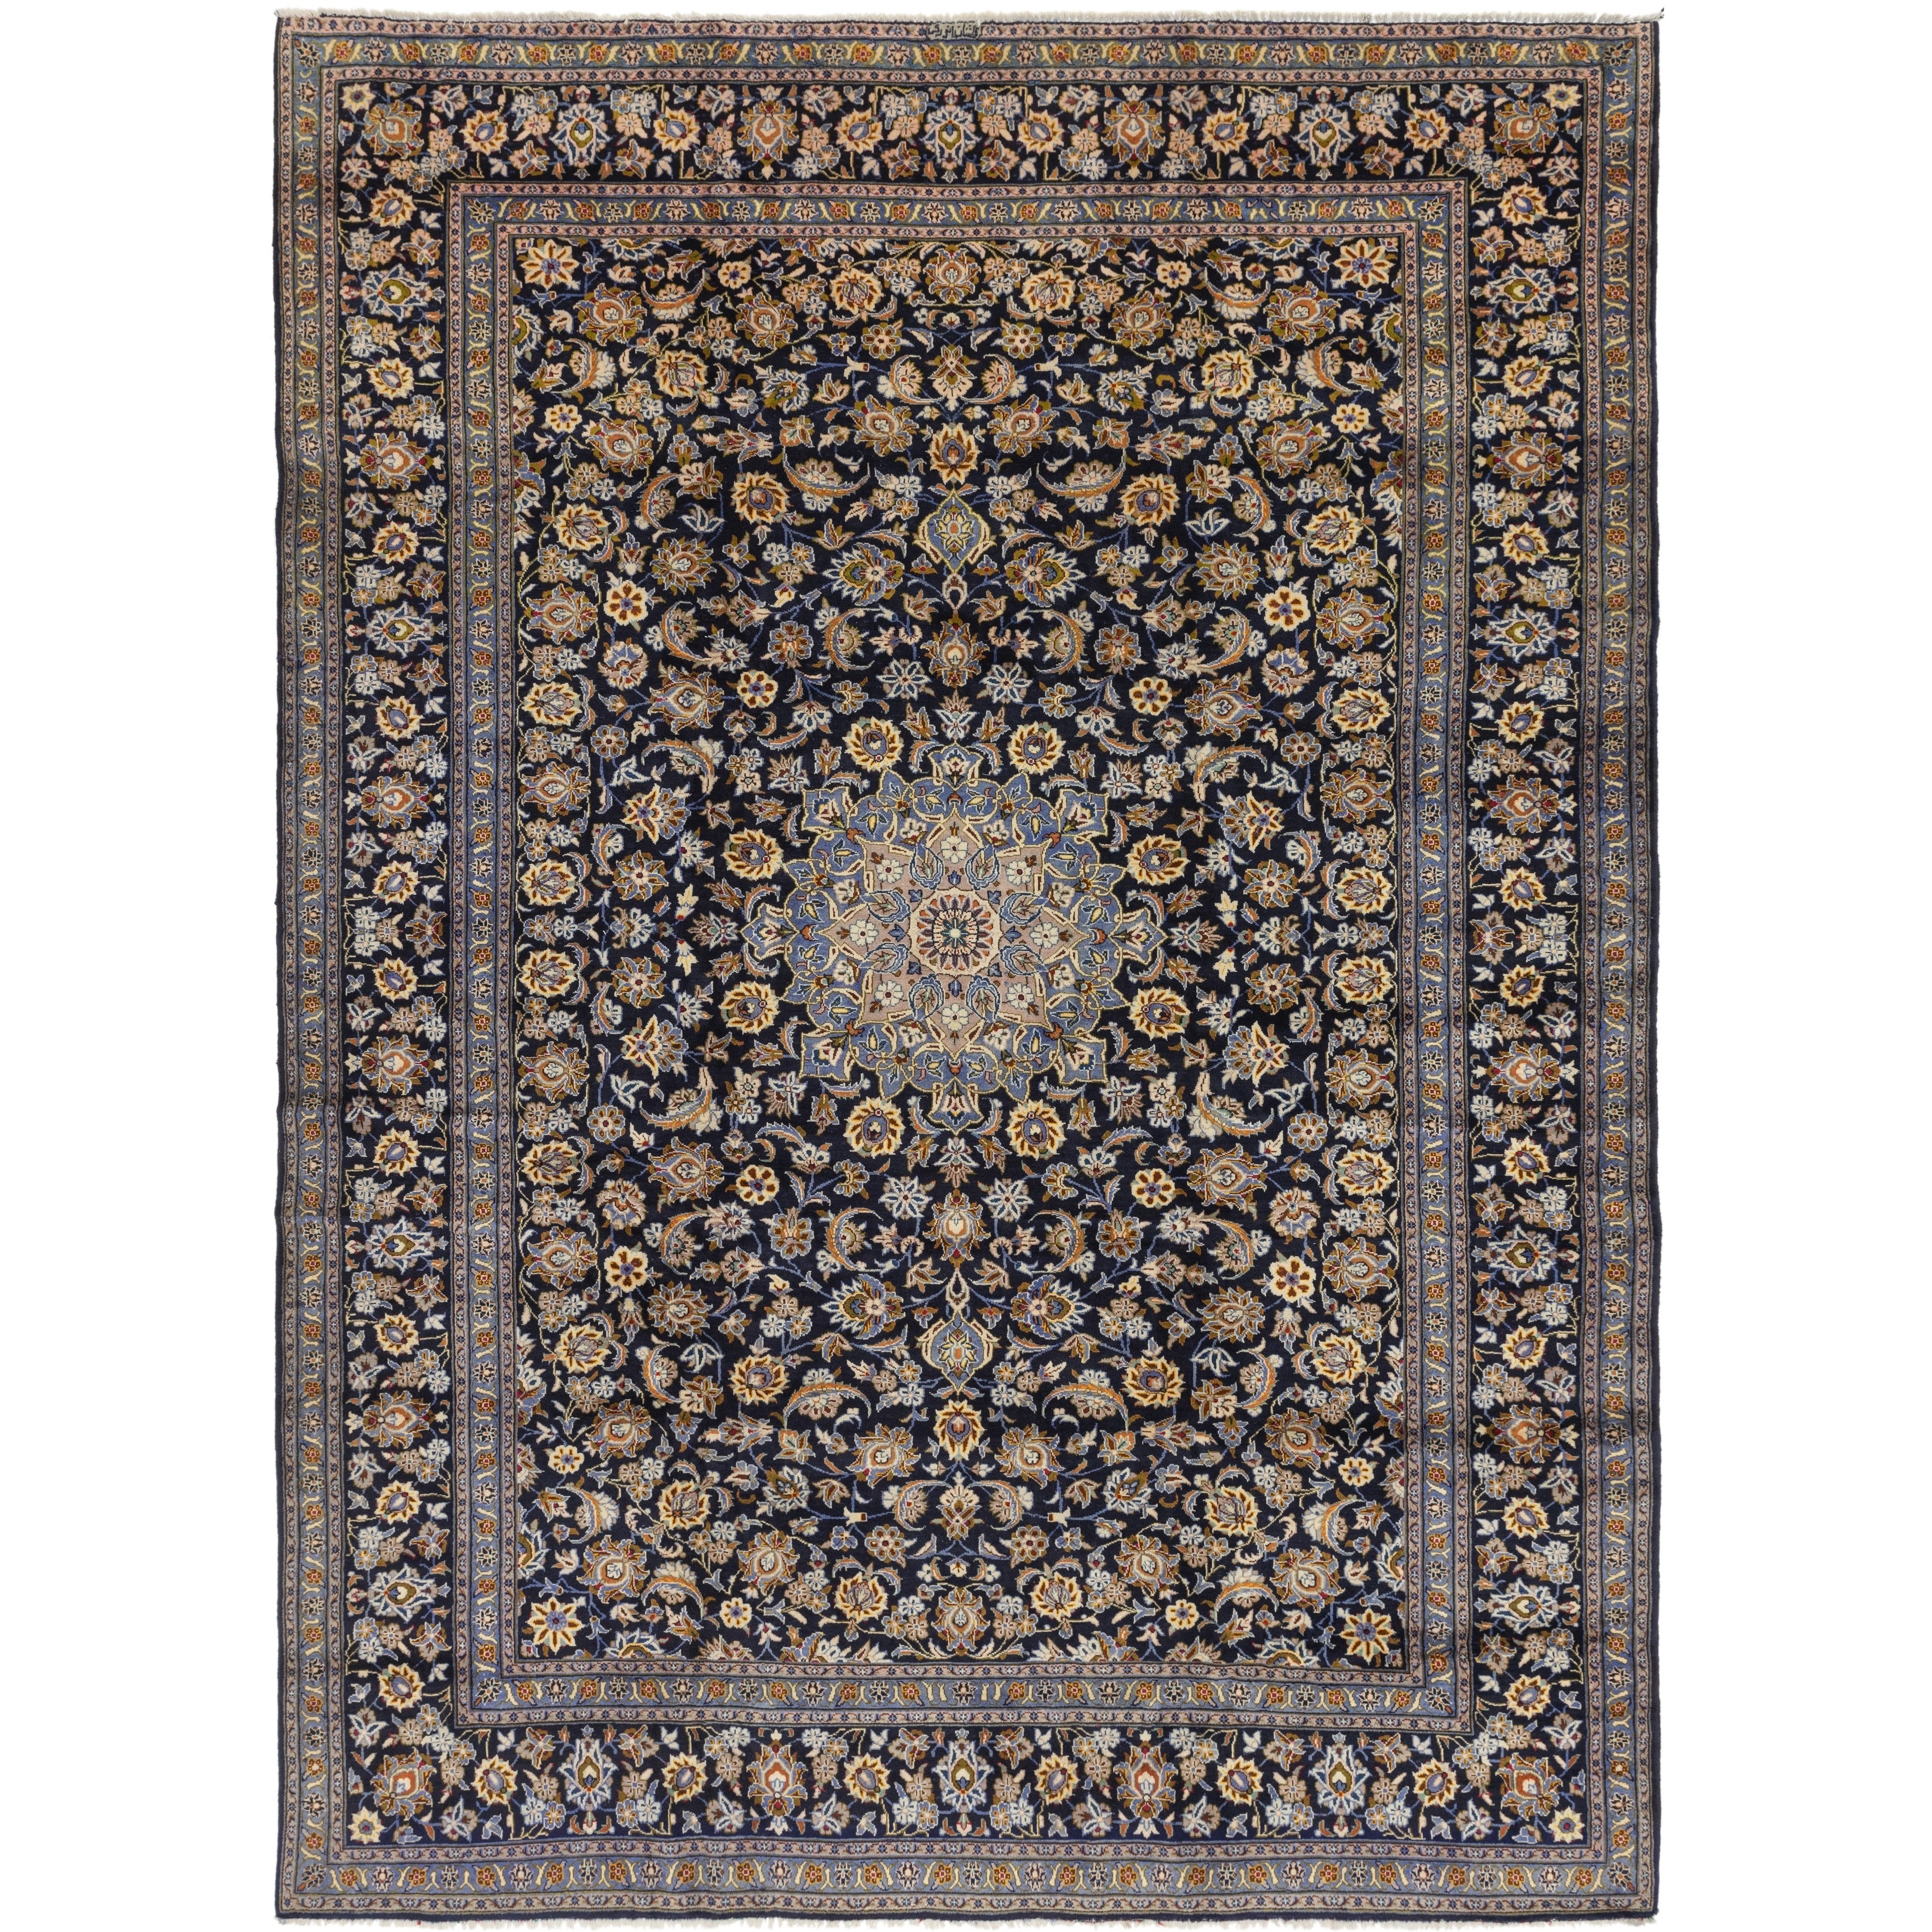 Hand Knotted Kashan Wool Area Rug - 10 2 x 13 9 (Navy blue - 10 2 x 13 9)